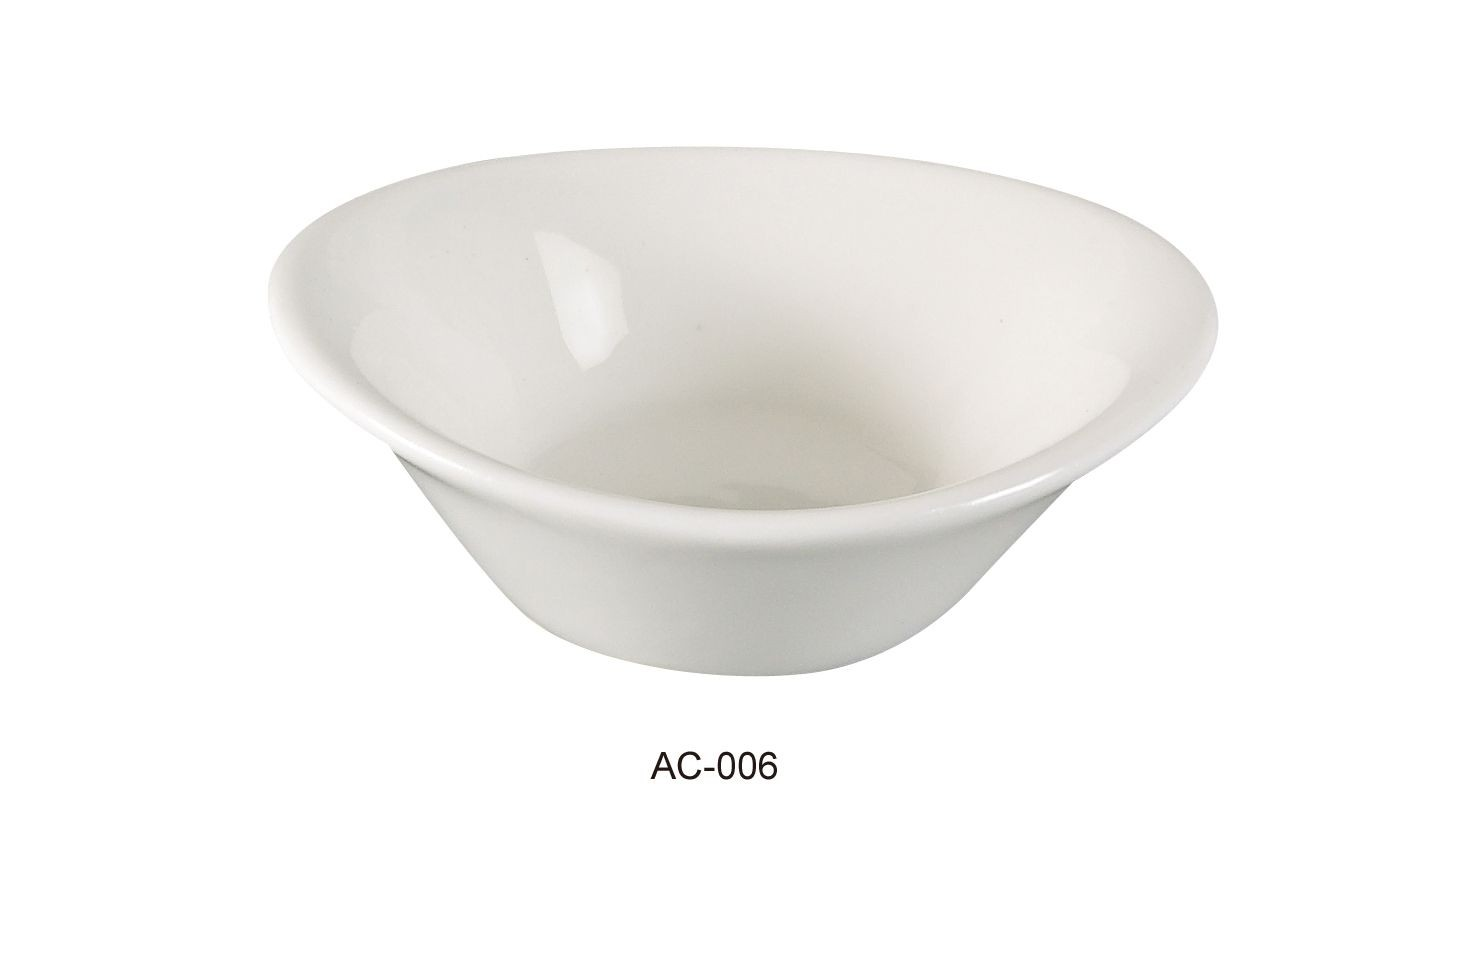 Jelly Dish 2 Oz - Bright White Wide Rim China